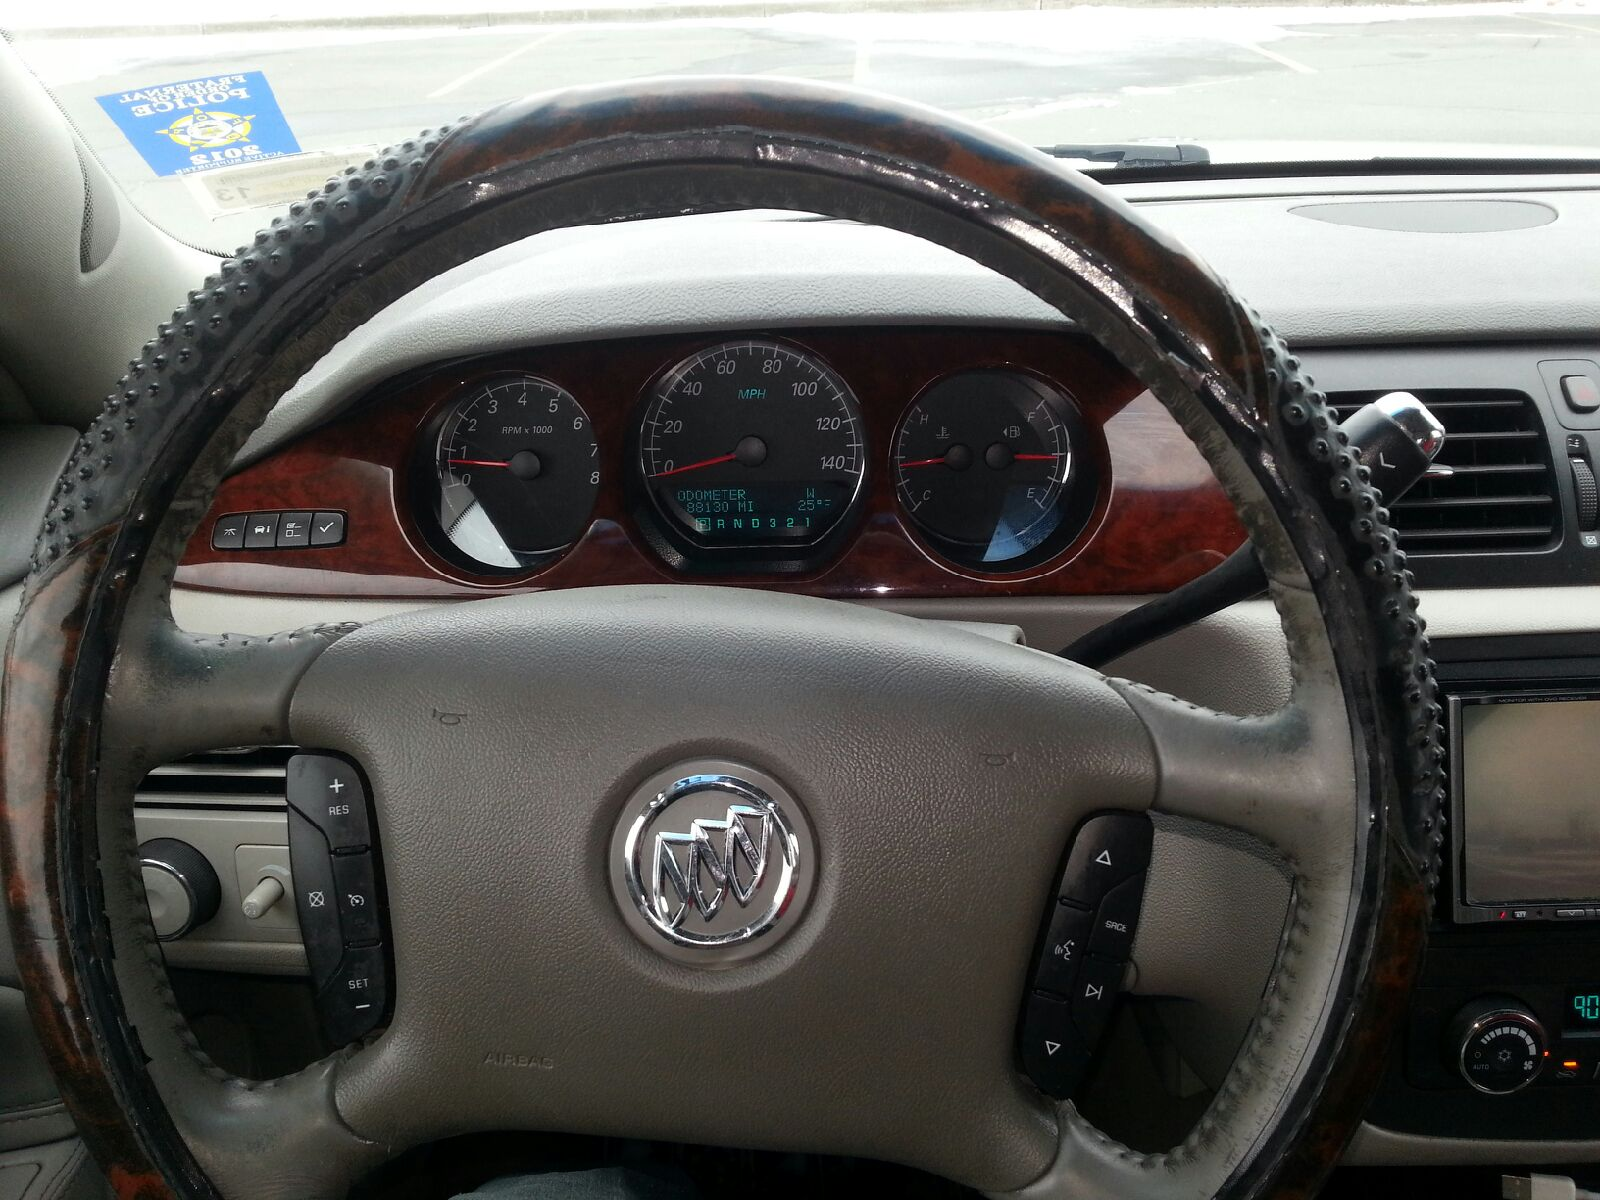 Buick Lucerne Cxl V Pic on 2007 Buick Lacrosse Rate